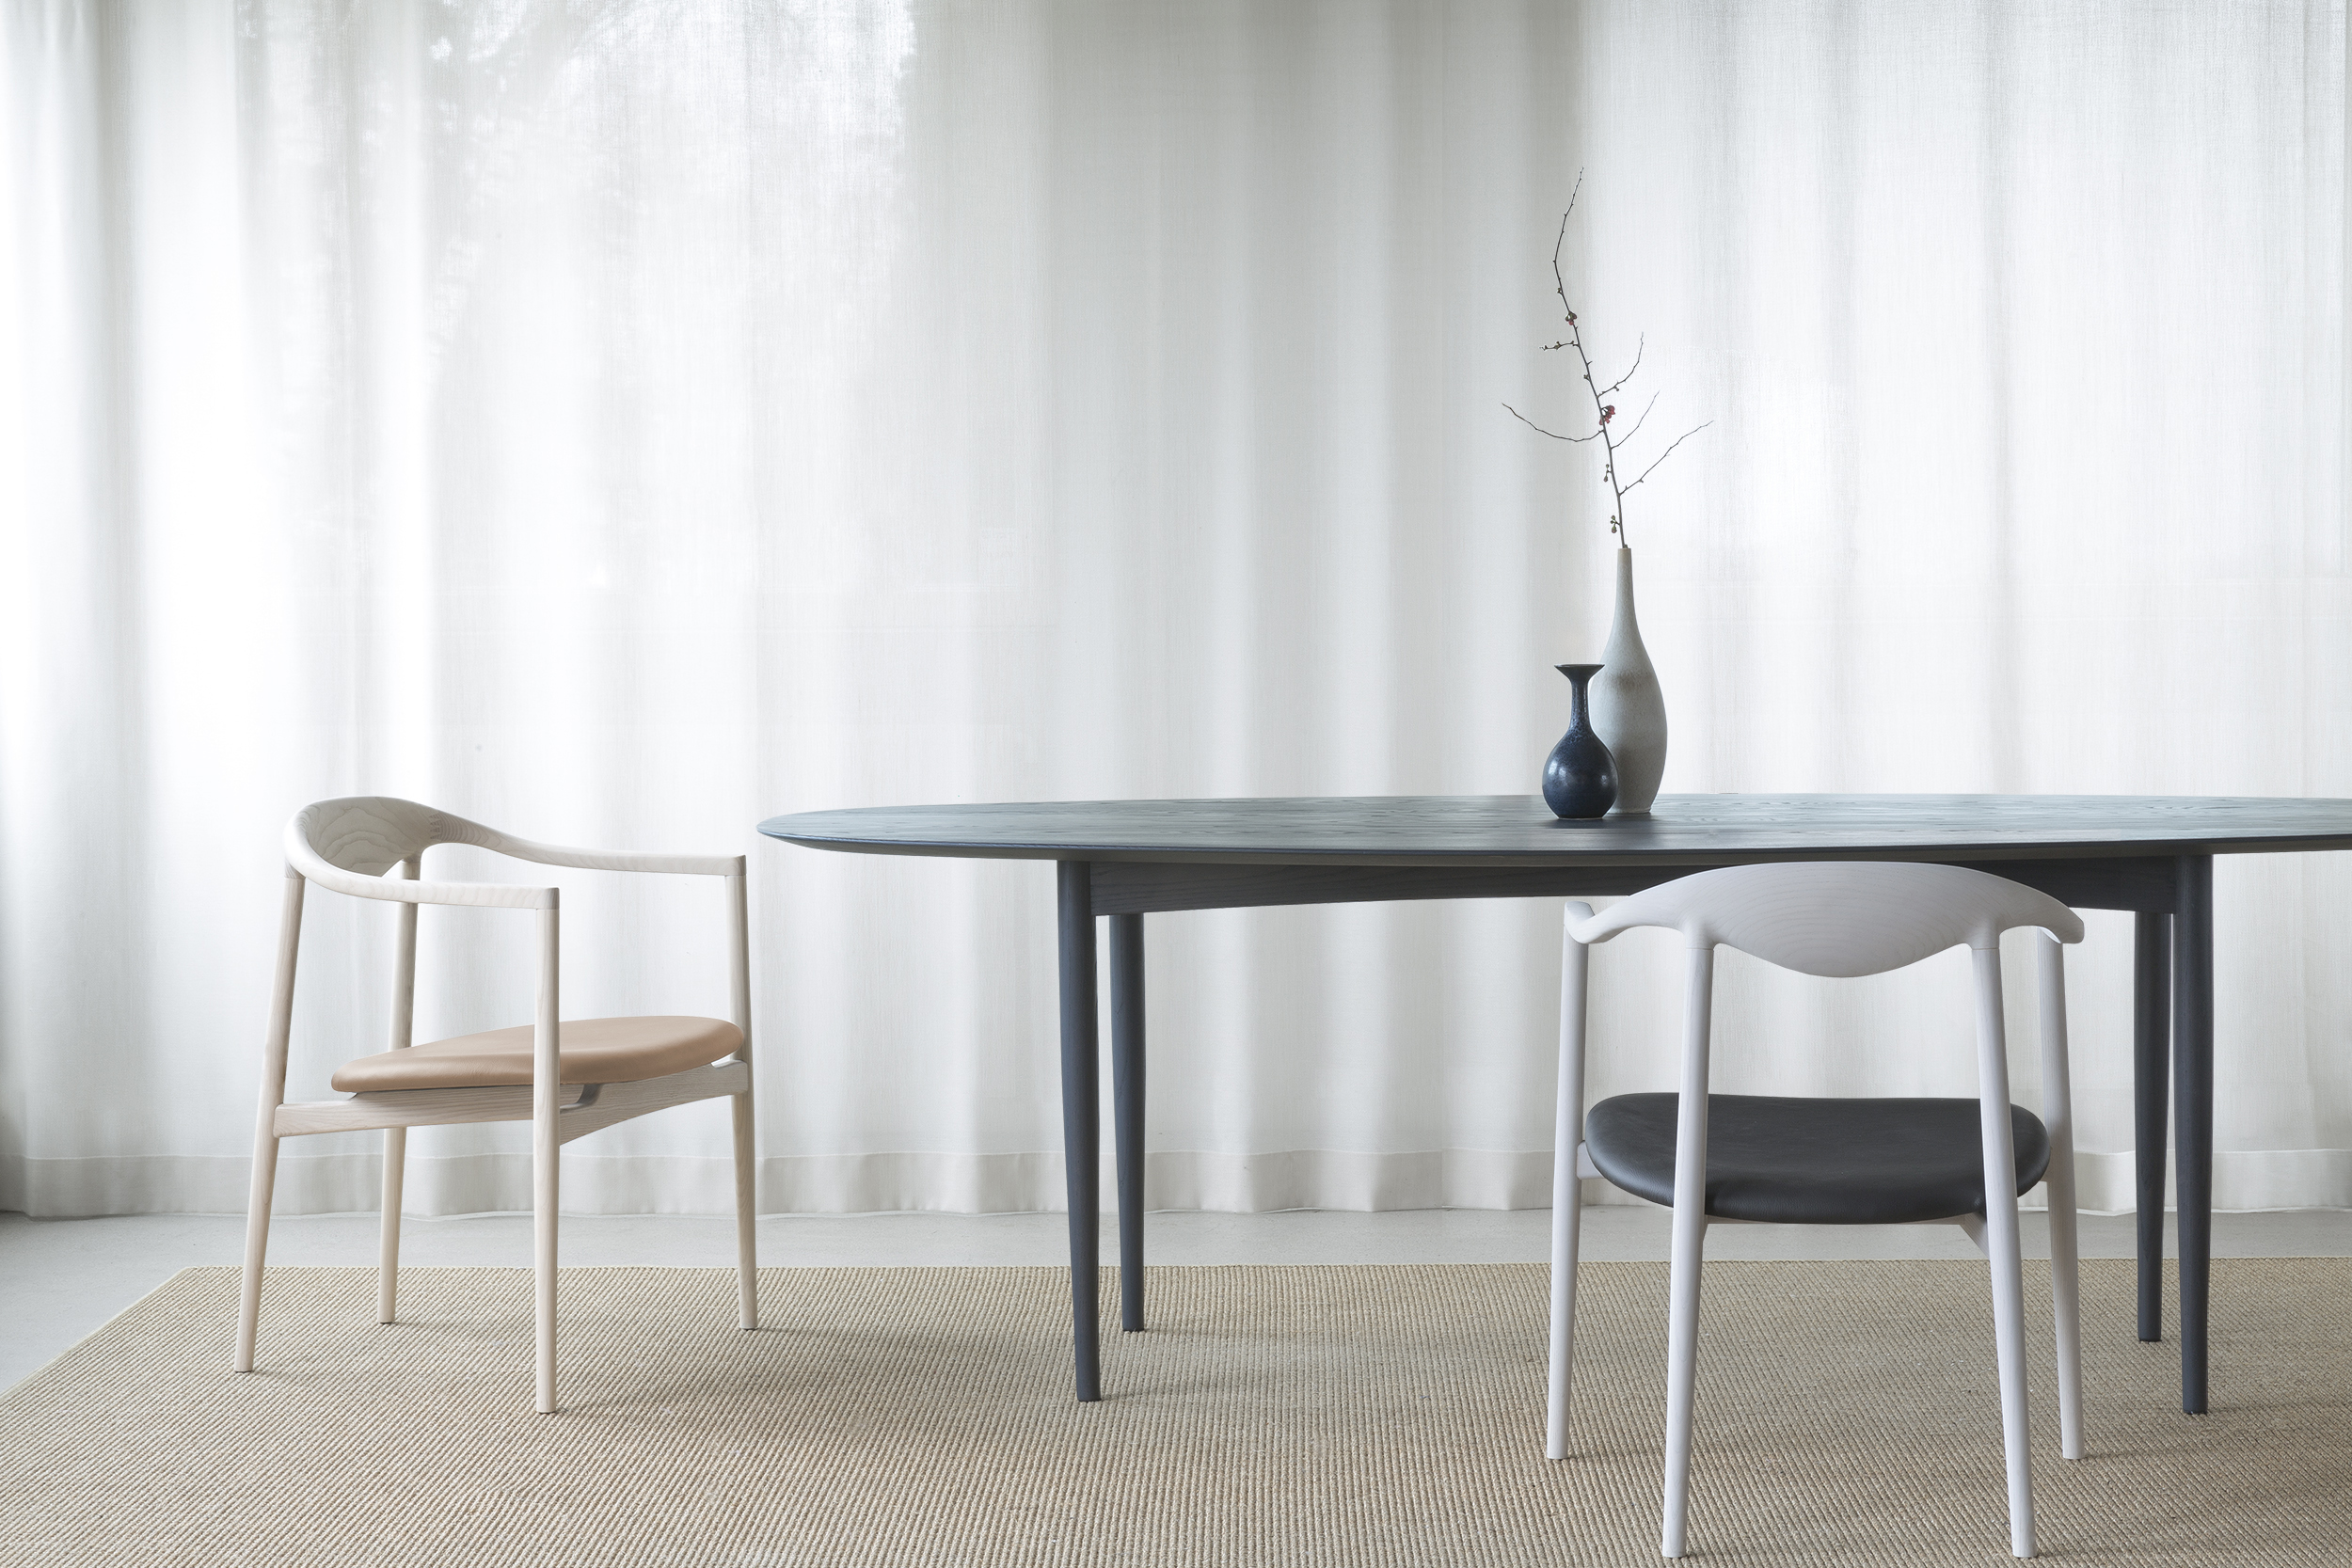 Arte-m Furniture Uk My Favourite Minimalist Furniture Launches At Milan Design Week